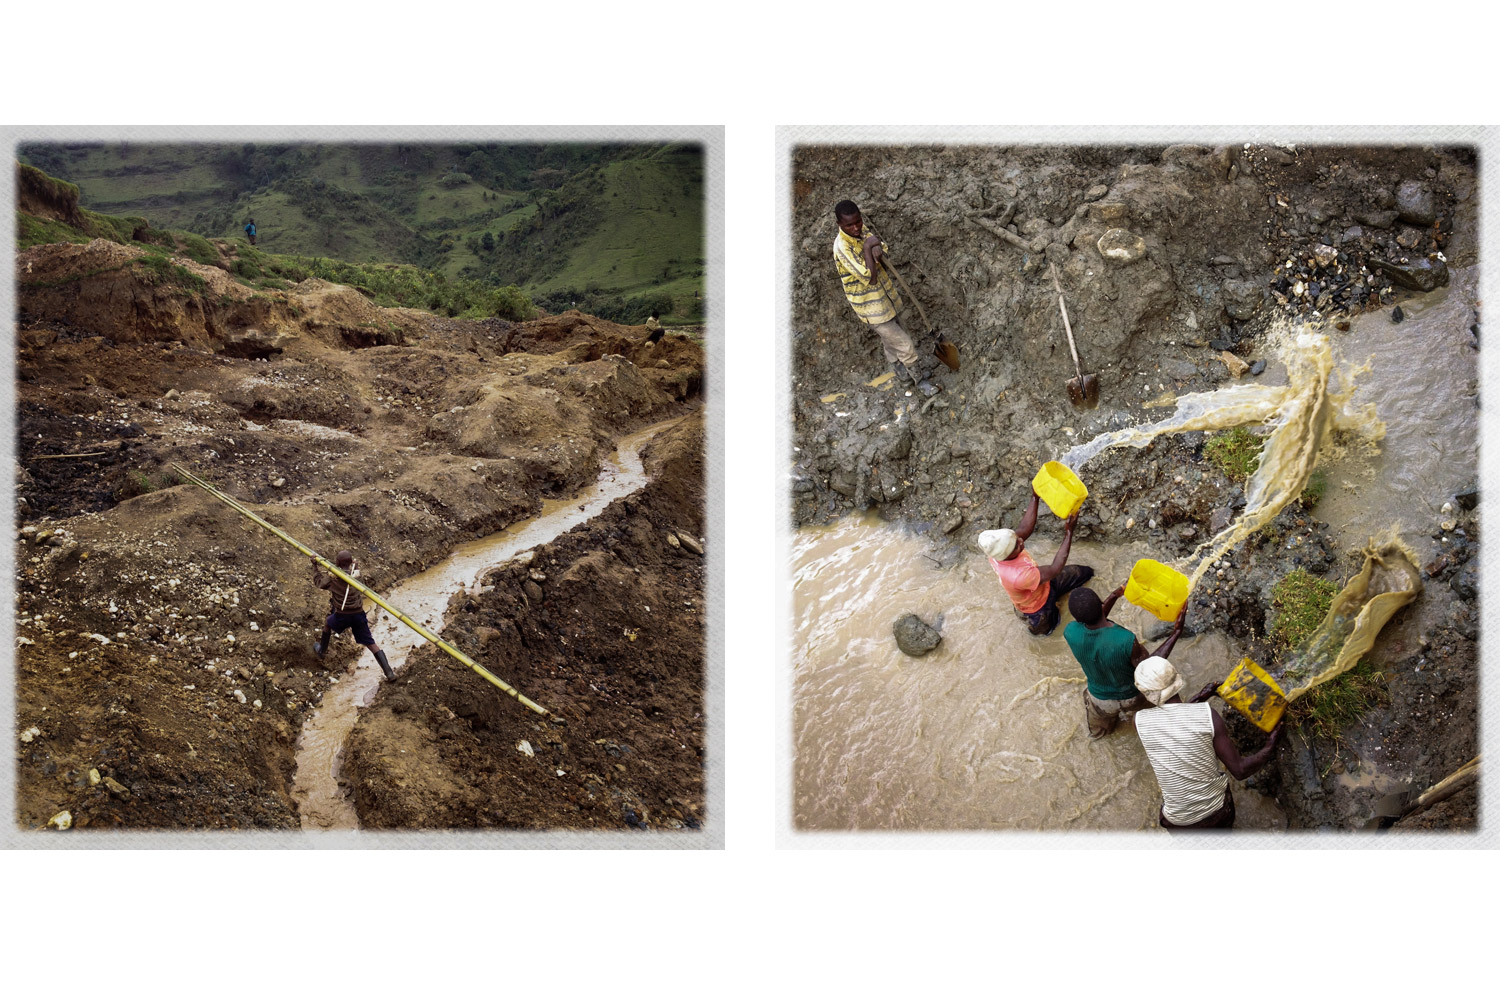 Mining in the eastern DRC is largely unregulated and results in large-scale manipulation and destruction of the landscape.